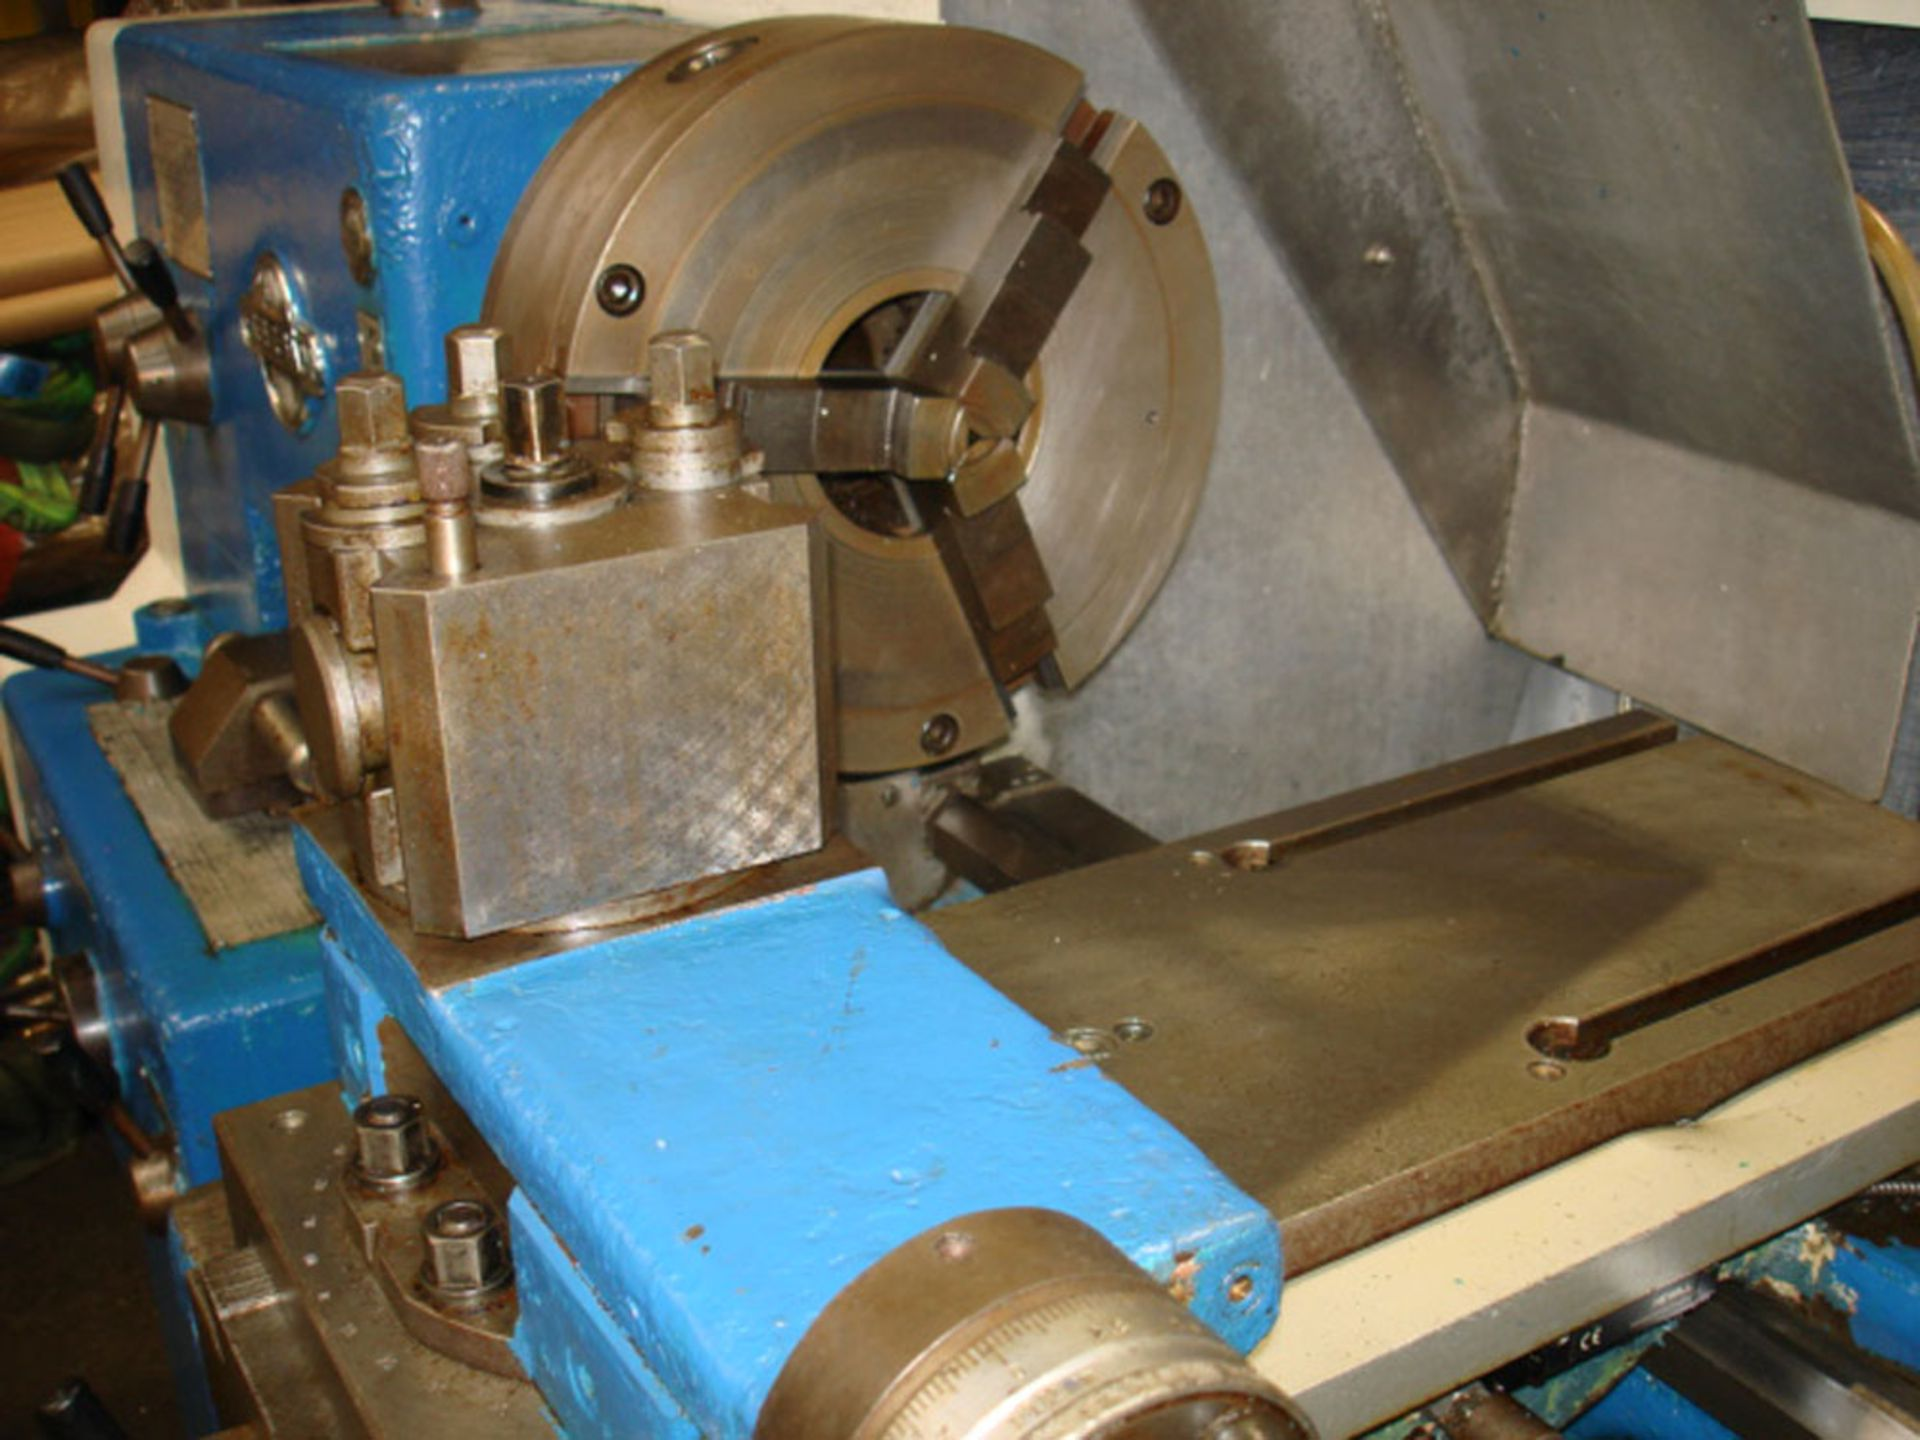 Tezsan SN50 Centre Lathe. Swing Over Bed 500mm x 1000mm Between Centres. - Image 6 of 7